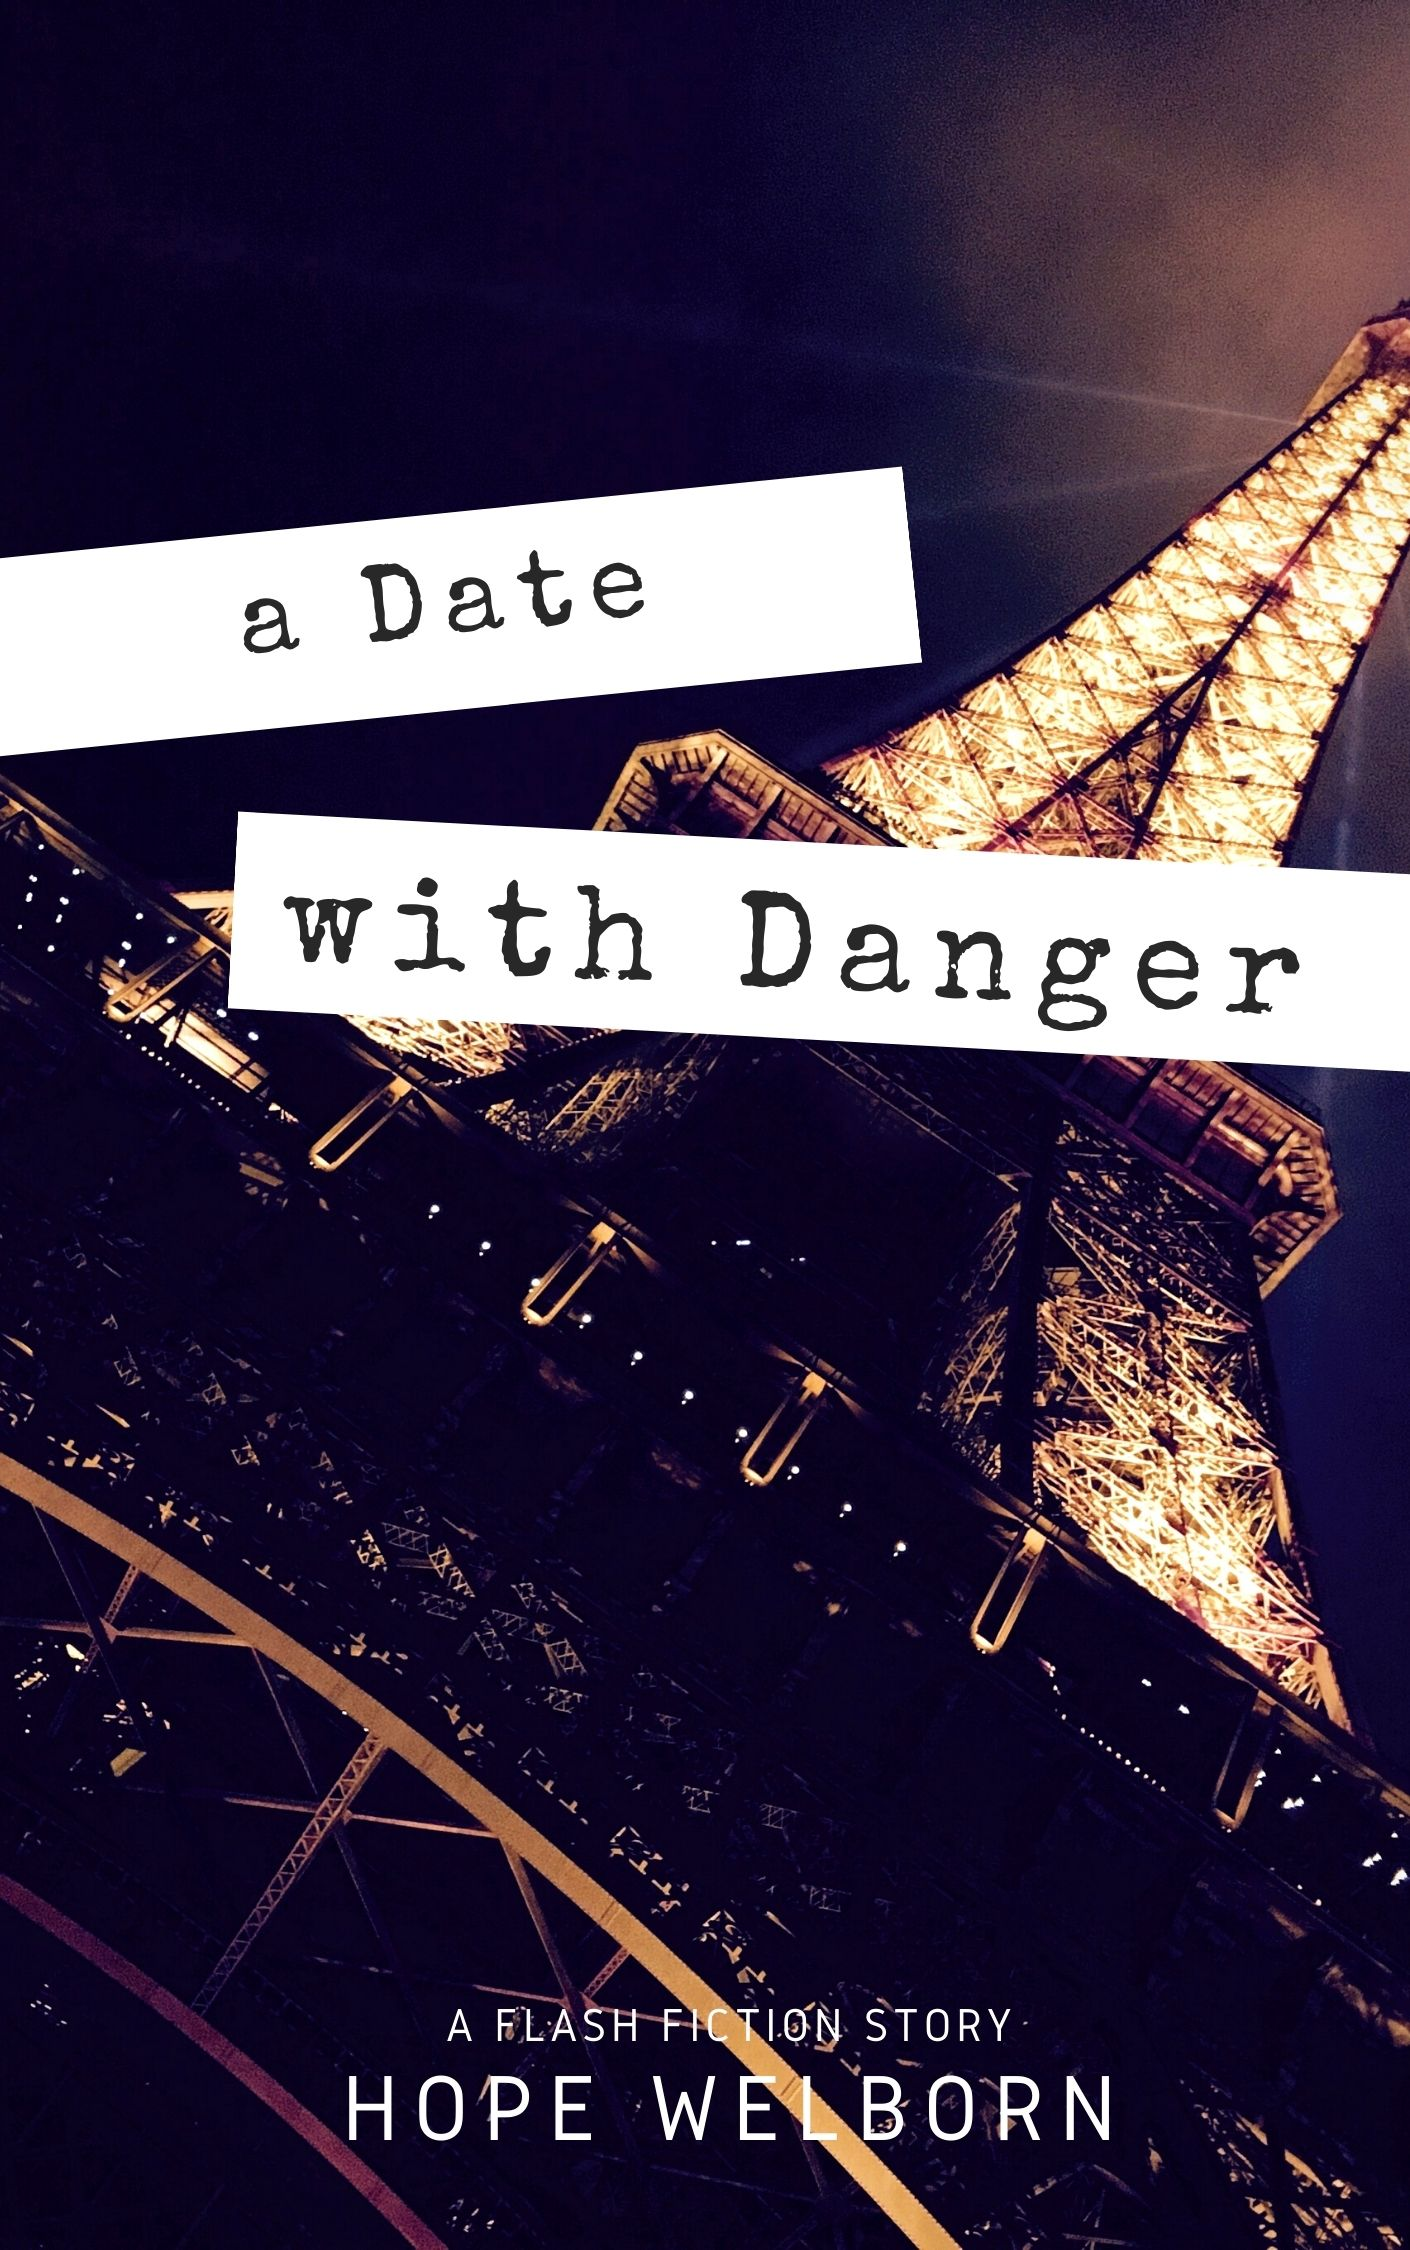 A Date with Danger - flash fiction story by Hope Welborn